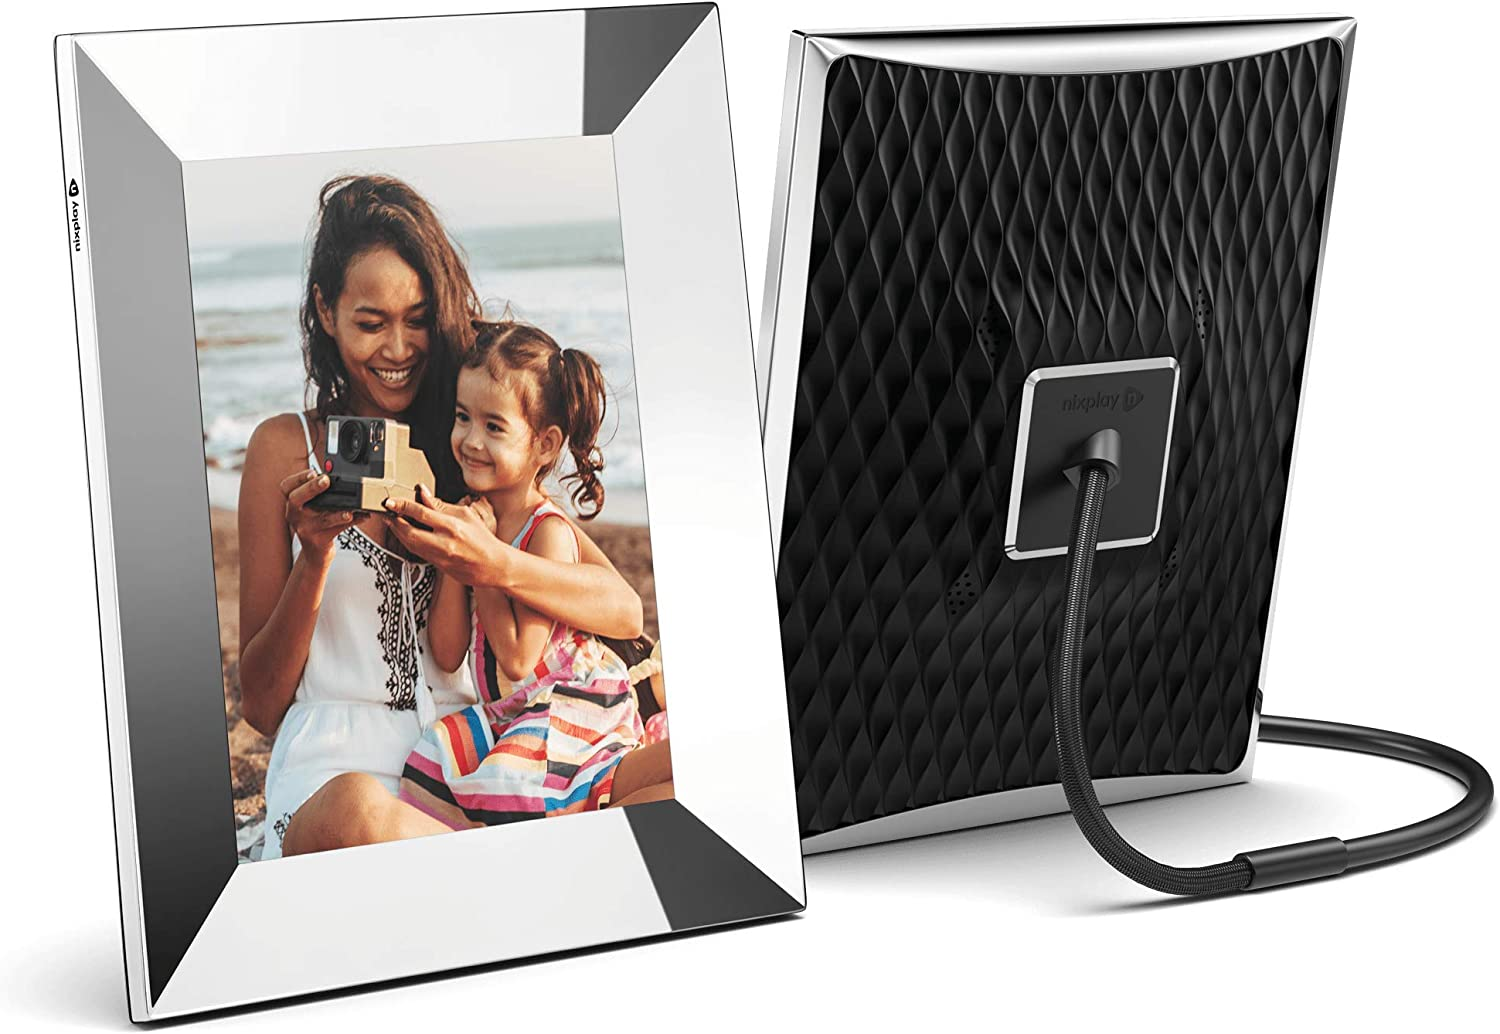 Nixplay Smart Digital Picture Frame 15.6 Inch, Share Moments Instantly via App or E-Mail : Electronics